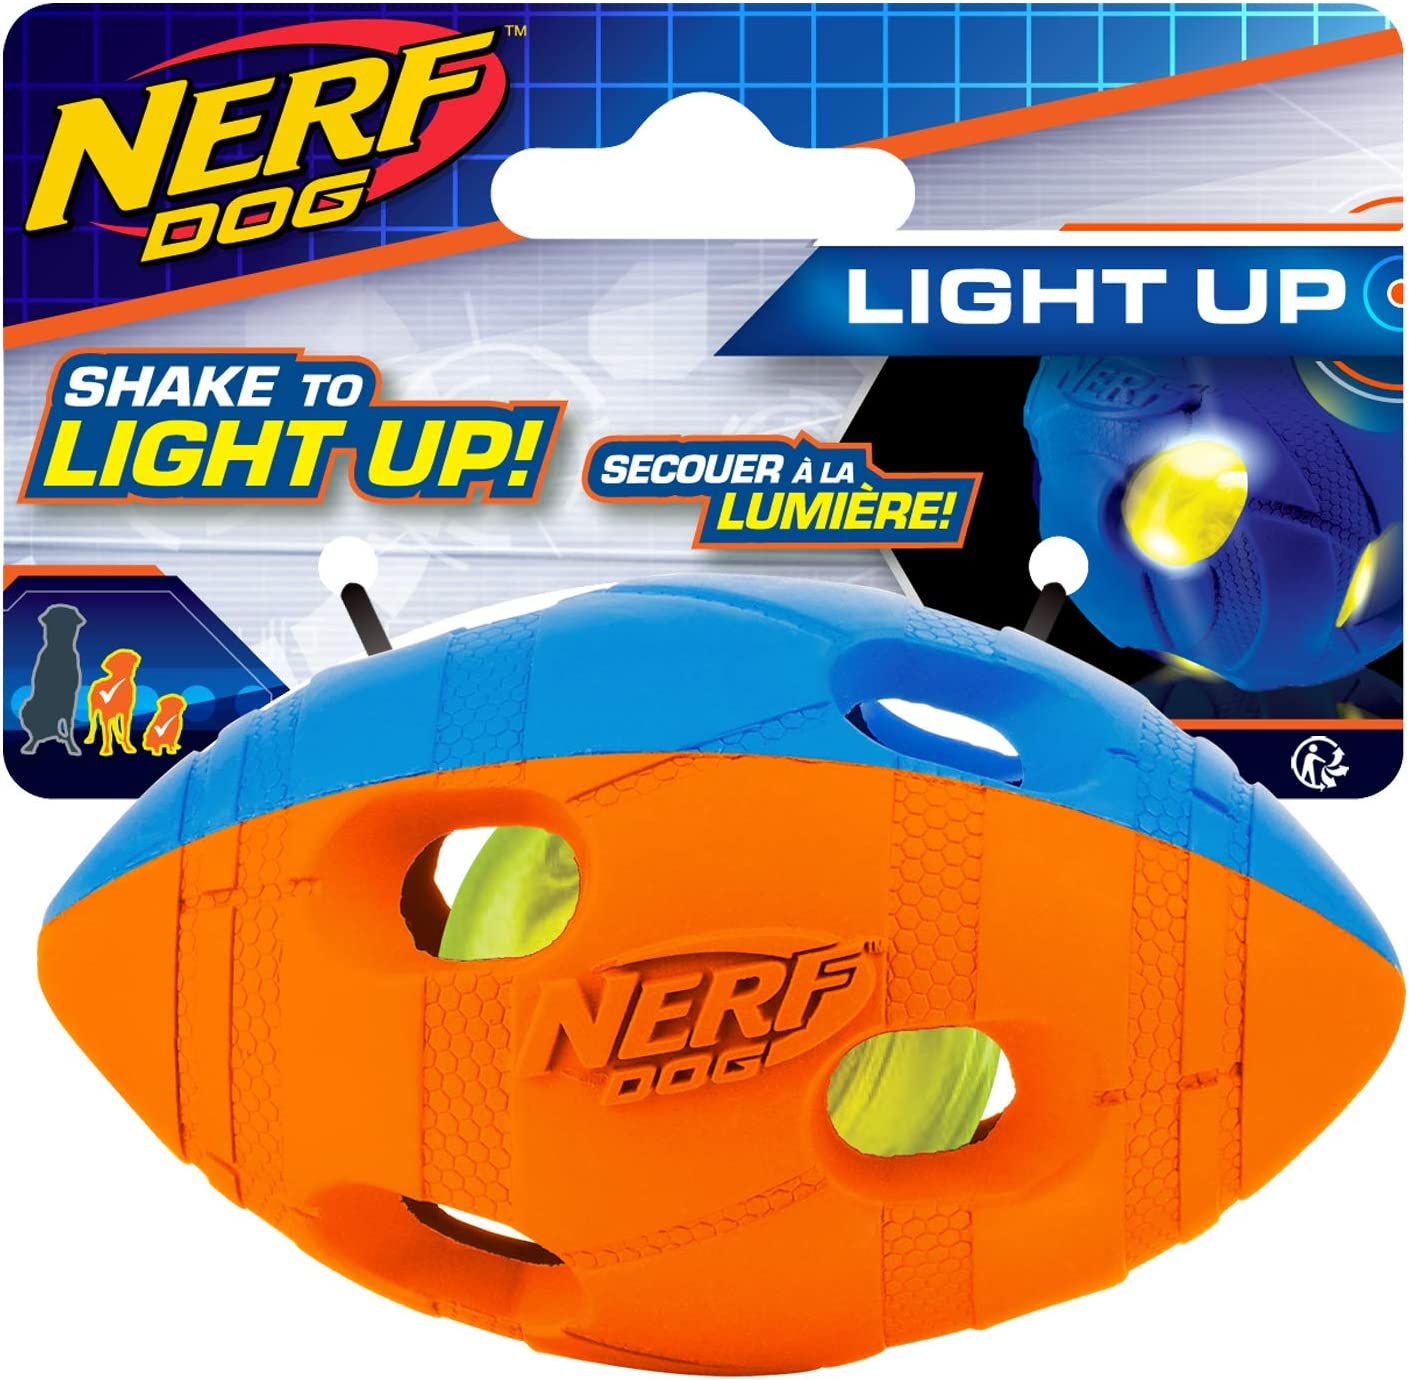 Nerf Dog Bash Football Dog Toy, Lightweight, Durable and Water Resistant, 4 Inch Diameter for Small/Medium/Large Breeds, Single Unit, Blue/Orange